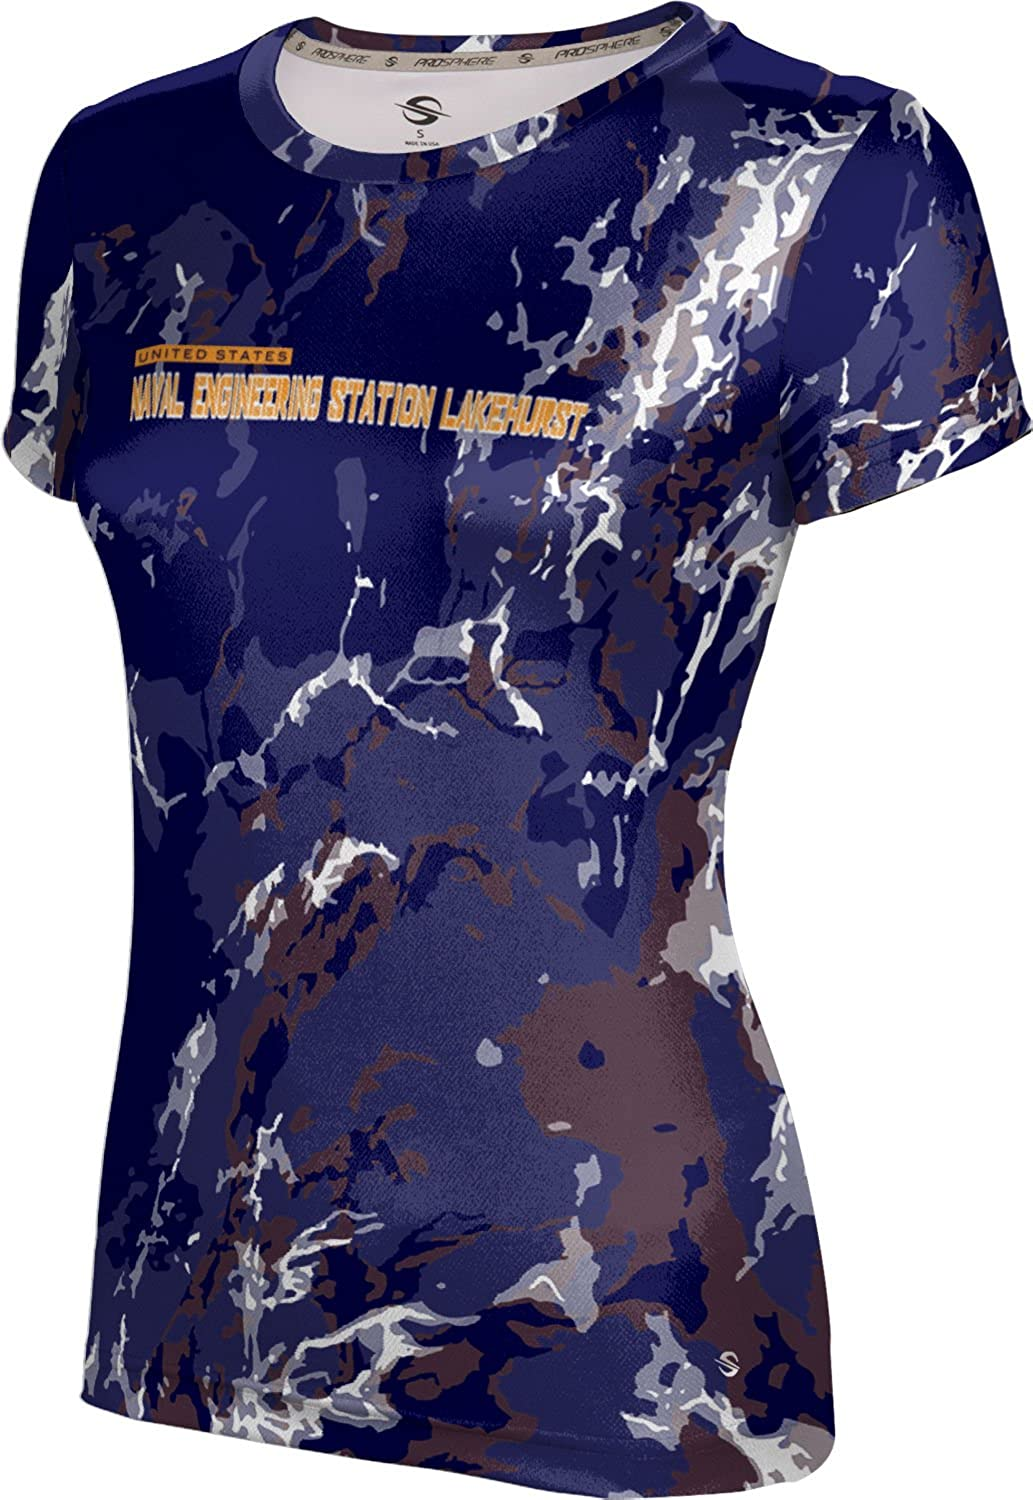 ProSphere Women's Naval Engineering Station Lakehurst Military Marble Tech Tee